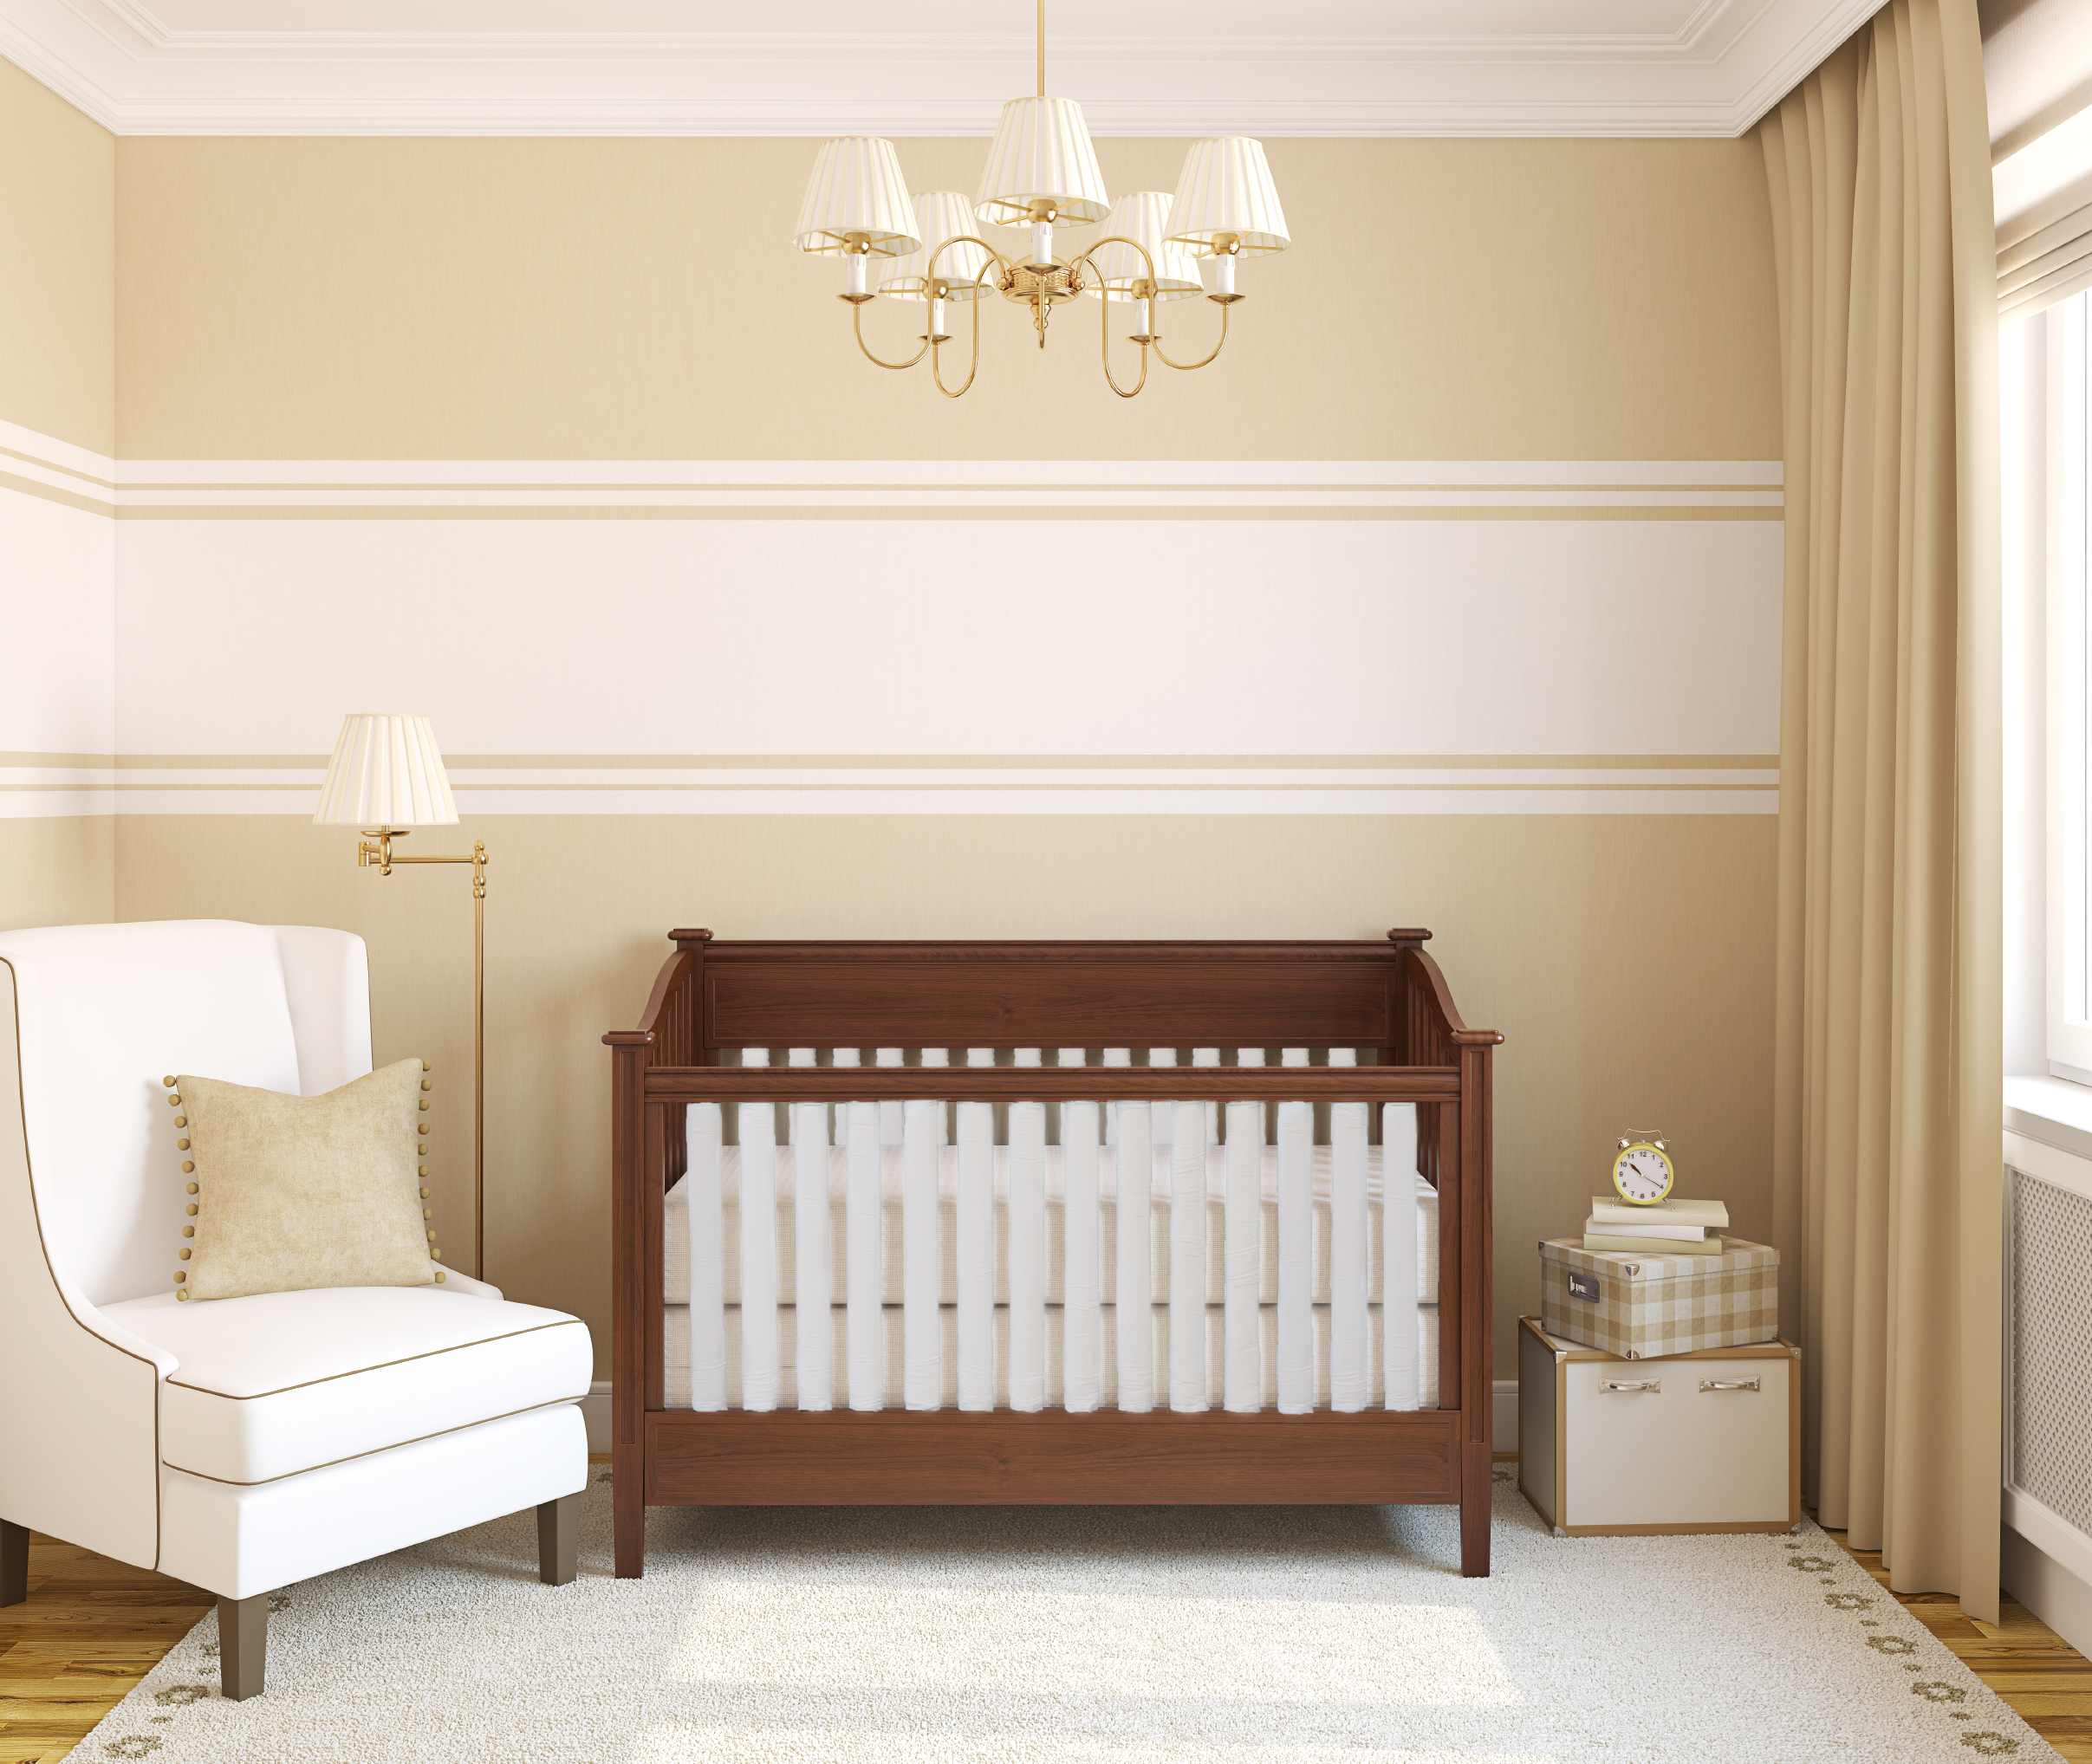 Congressional Push For Federal Ban on Crib Bumpers - Doctor Approved Wonder Bumpers Prove Safe Option